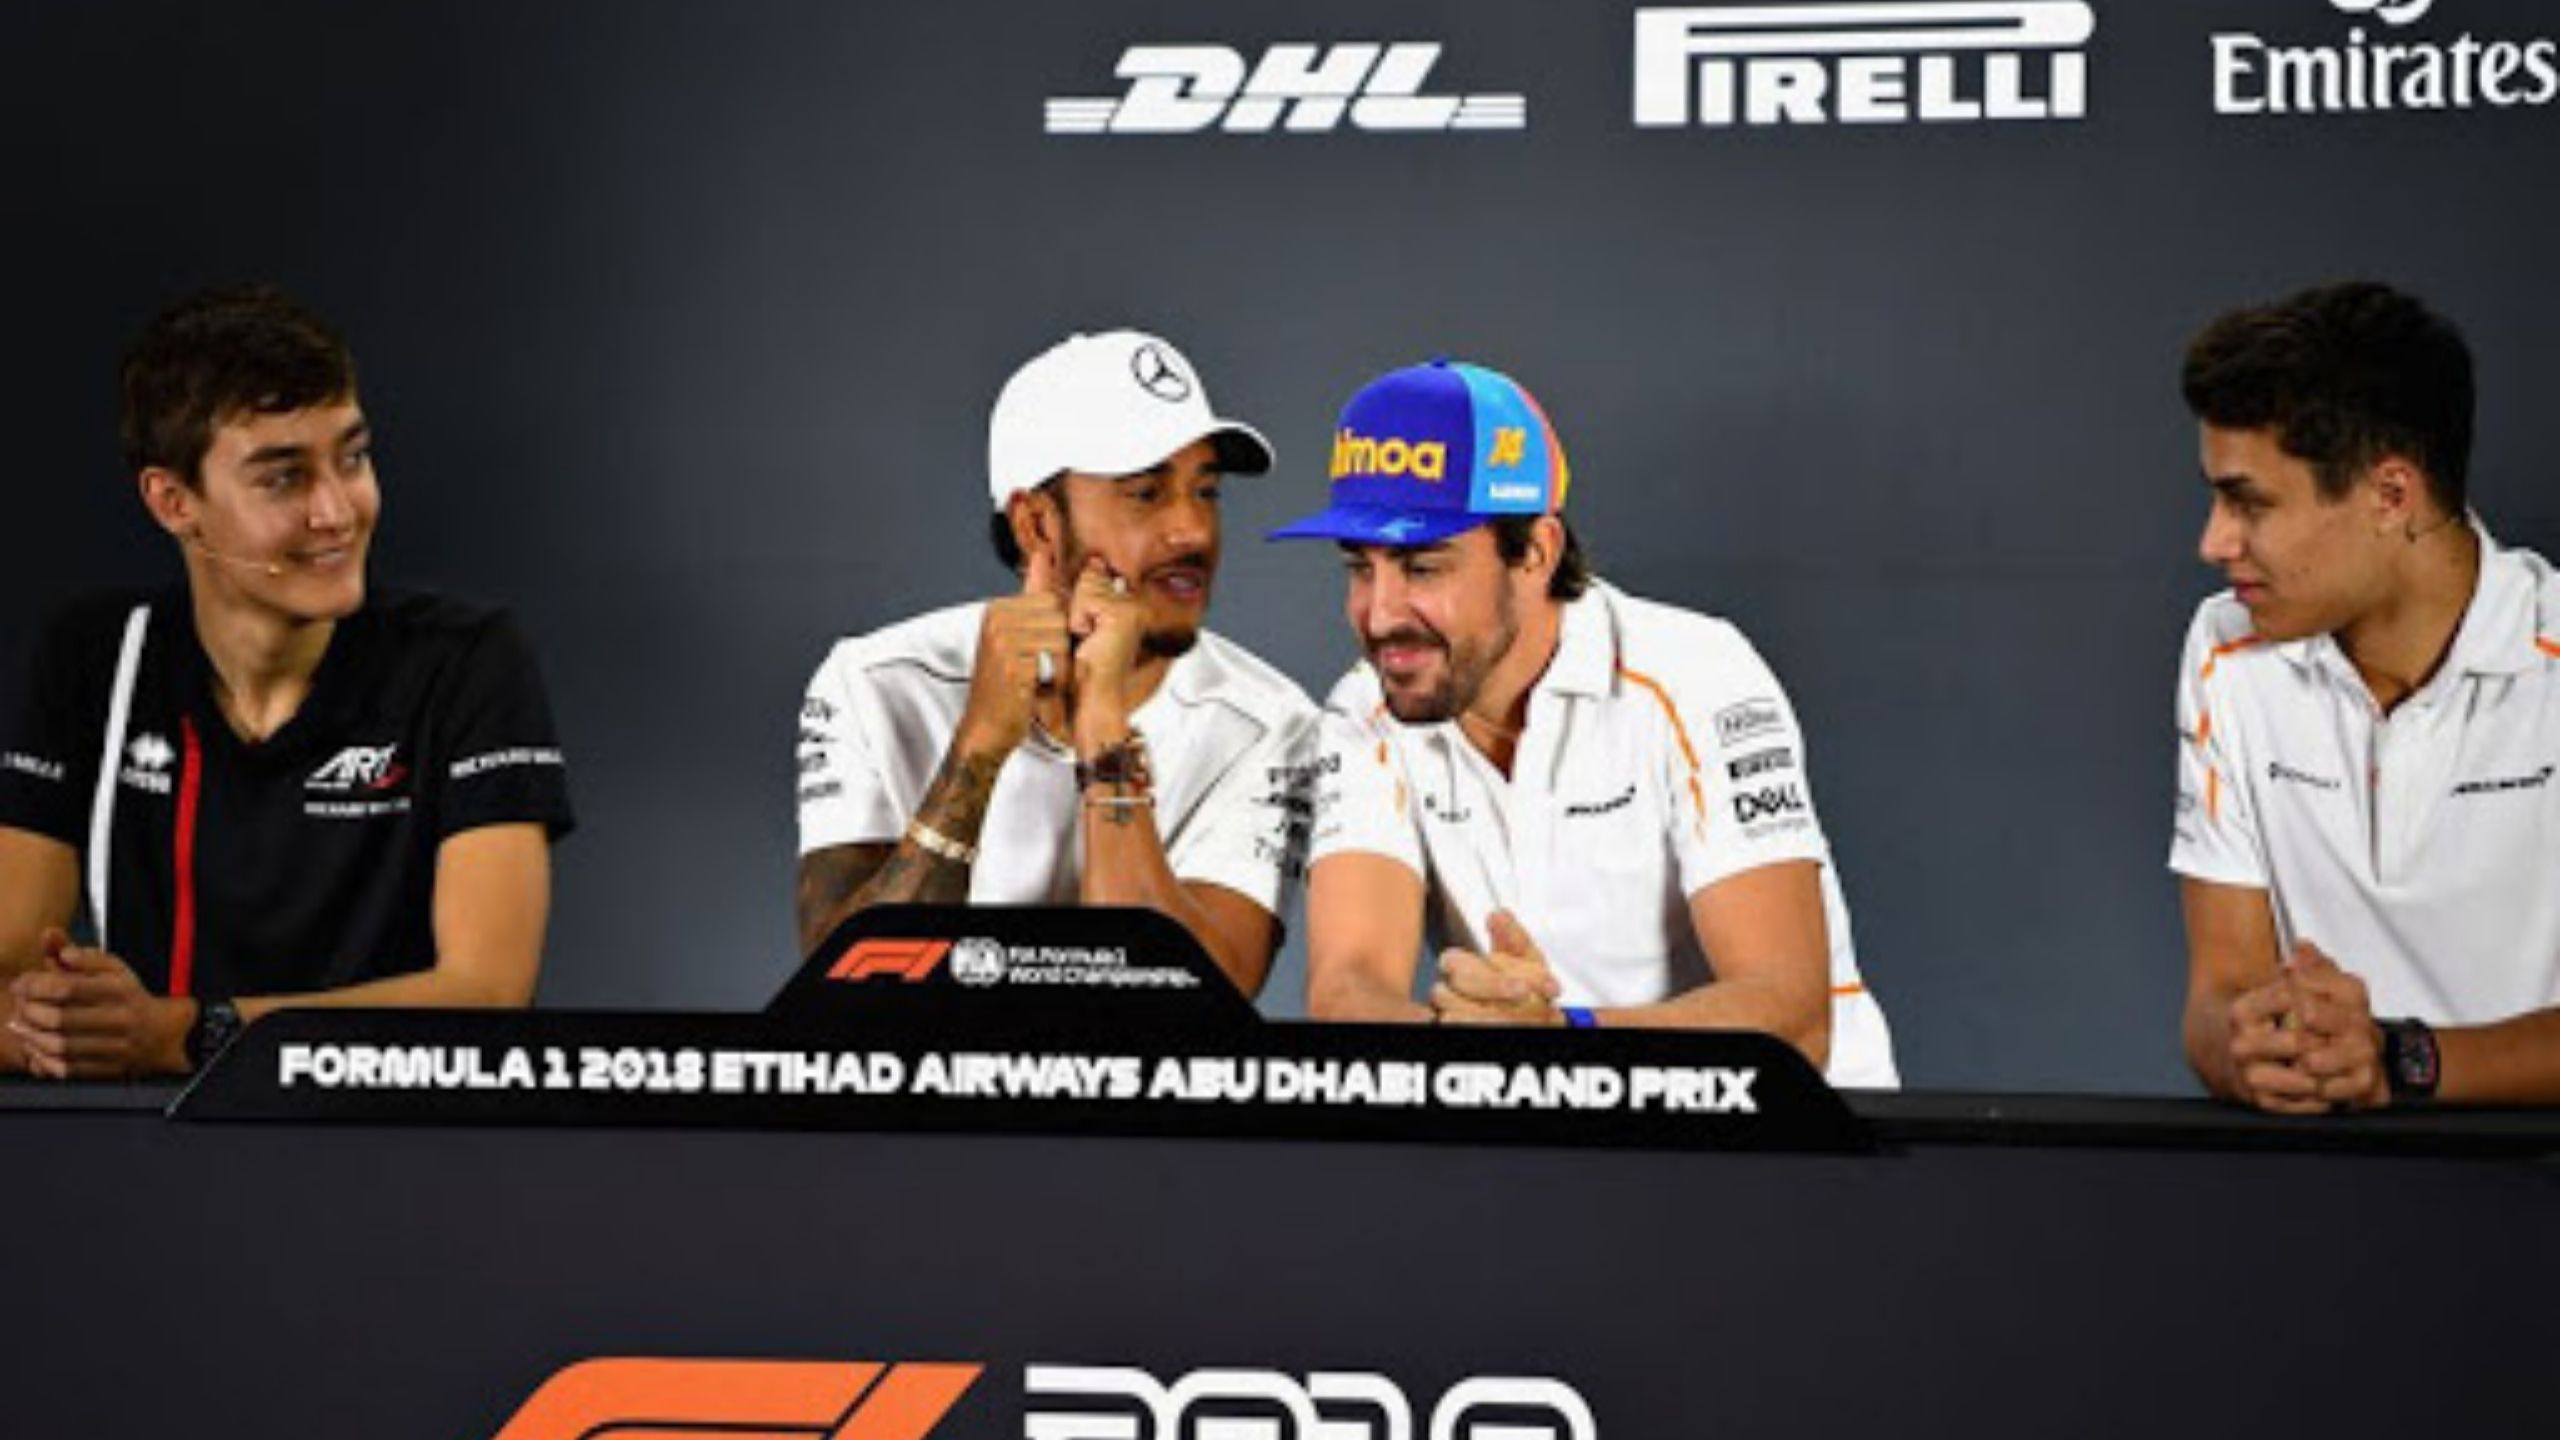 """In five days, not a hundred, he went from last to first"" - Fernando Alonso evaluates the George Russell situation from Williams to Mercedes"